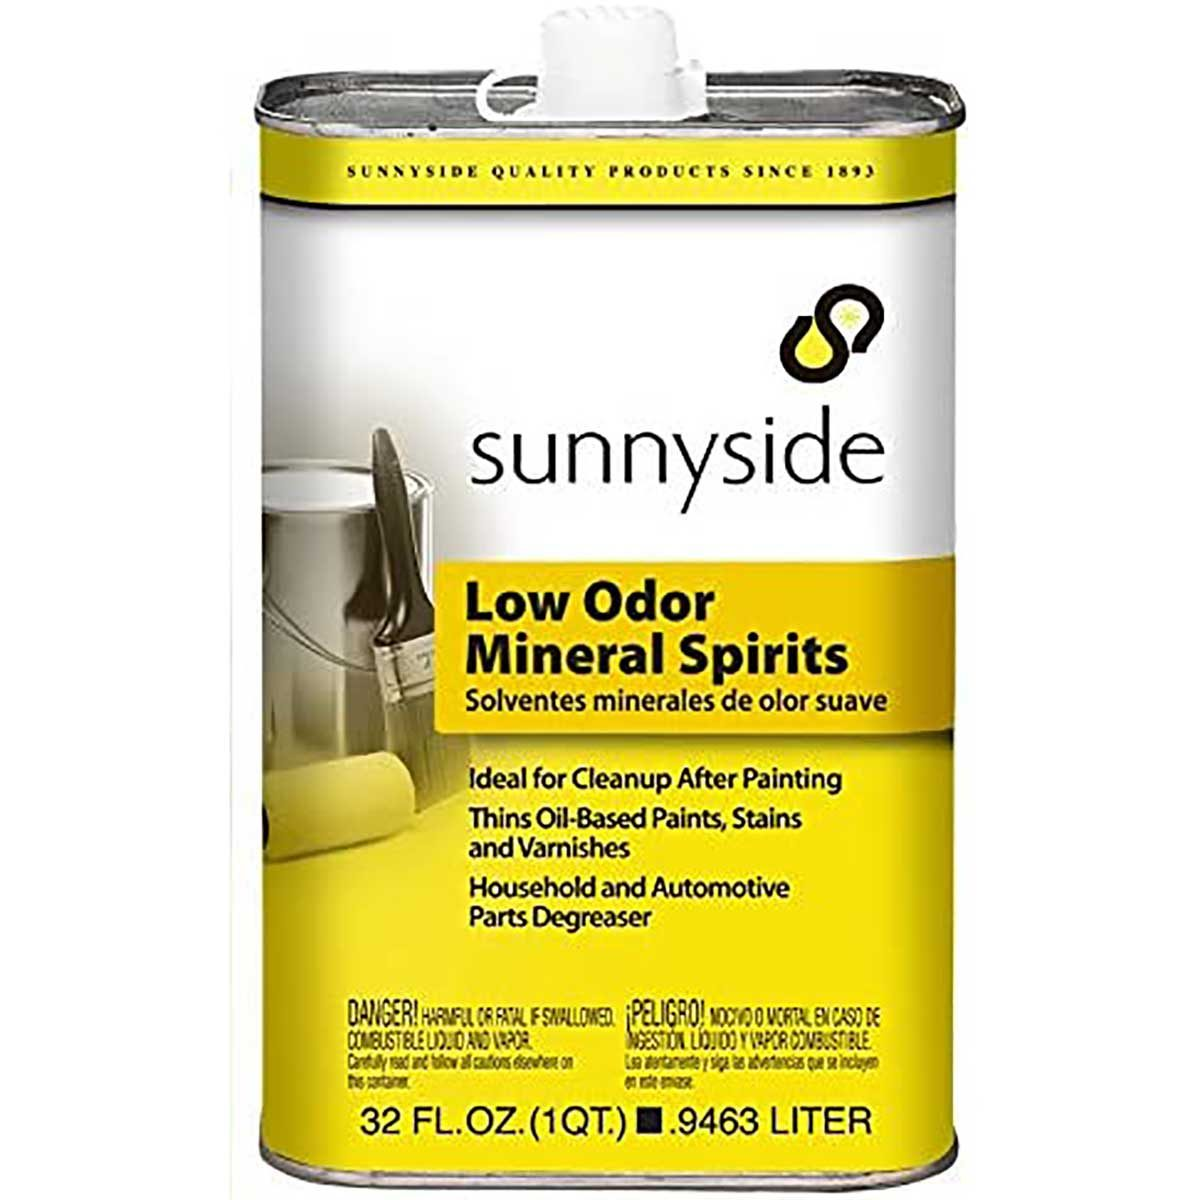 low odor mineral spirits